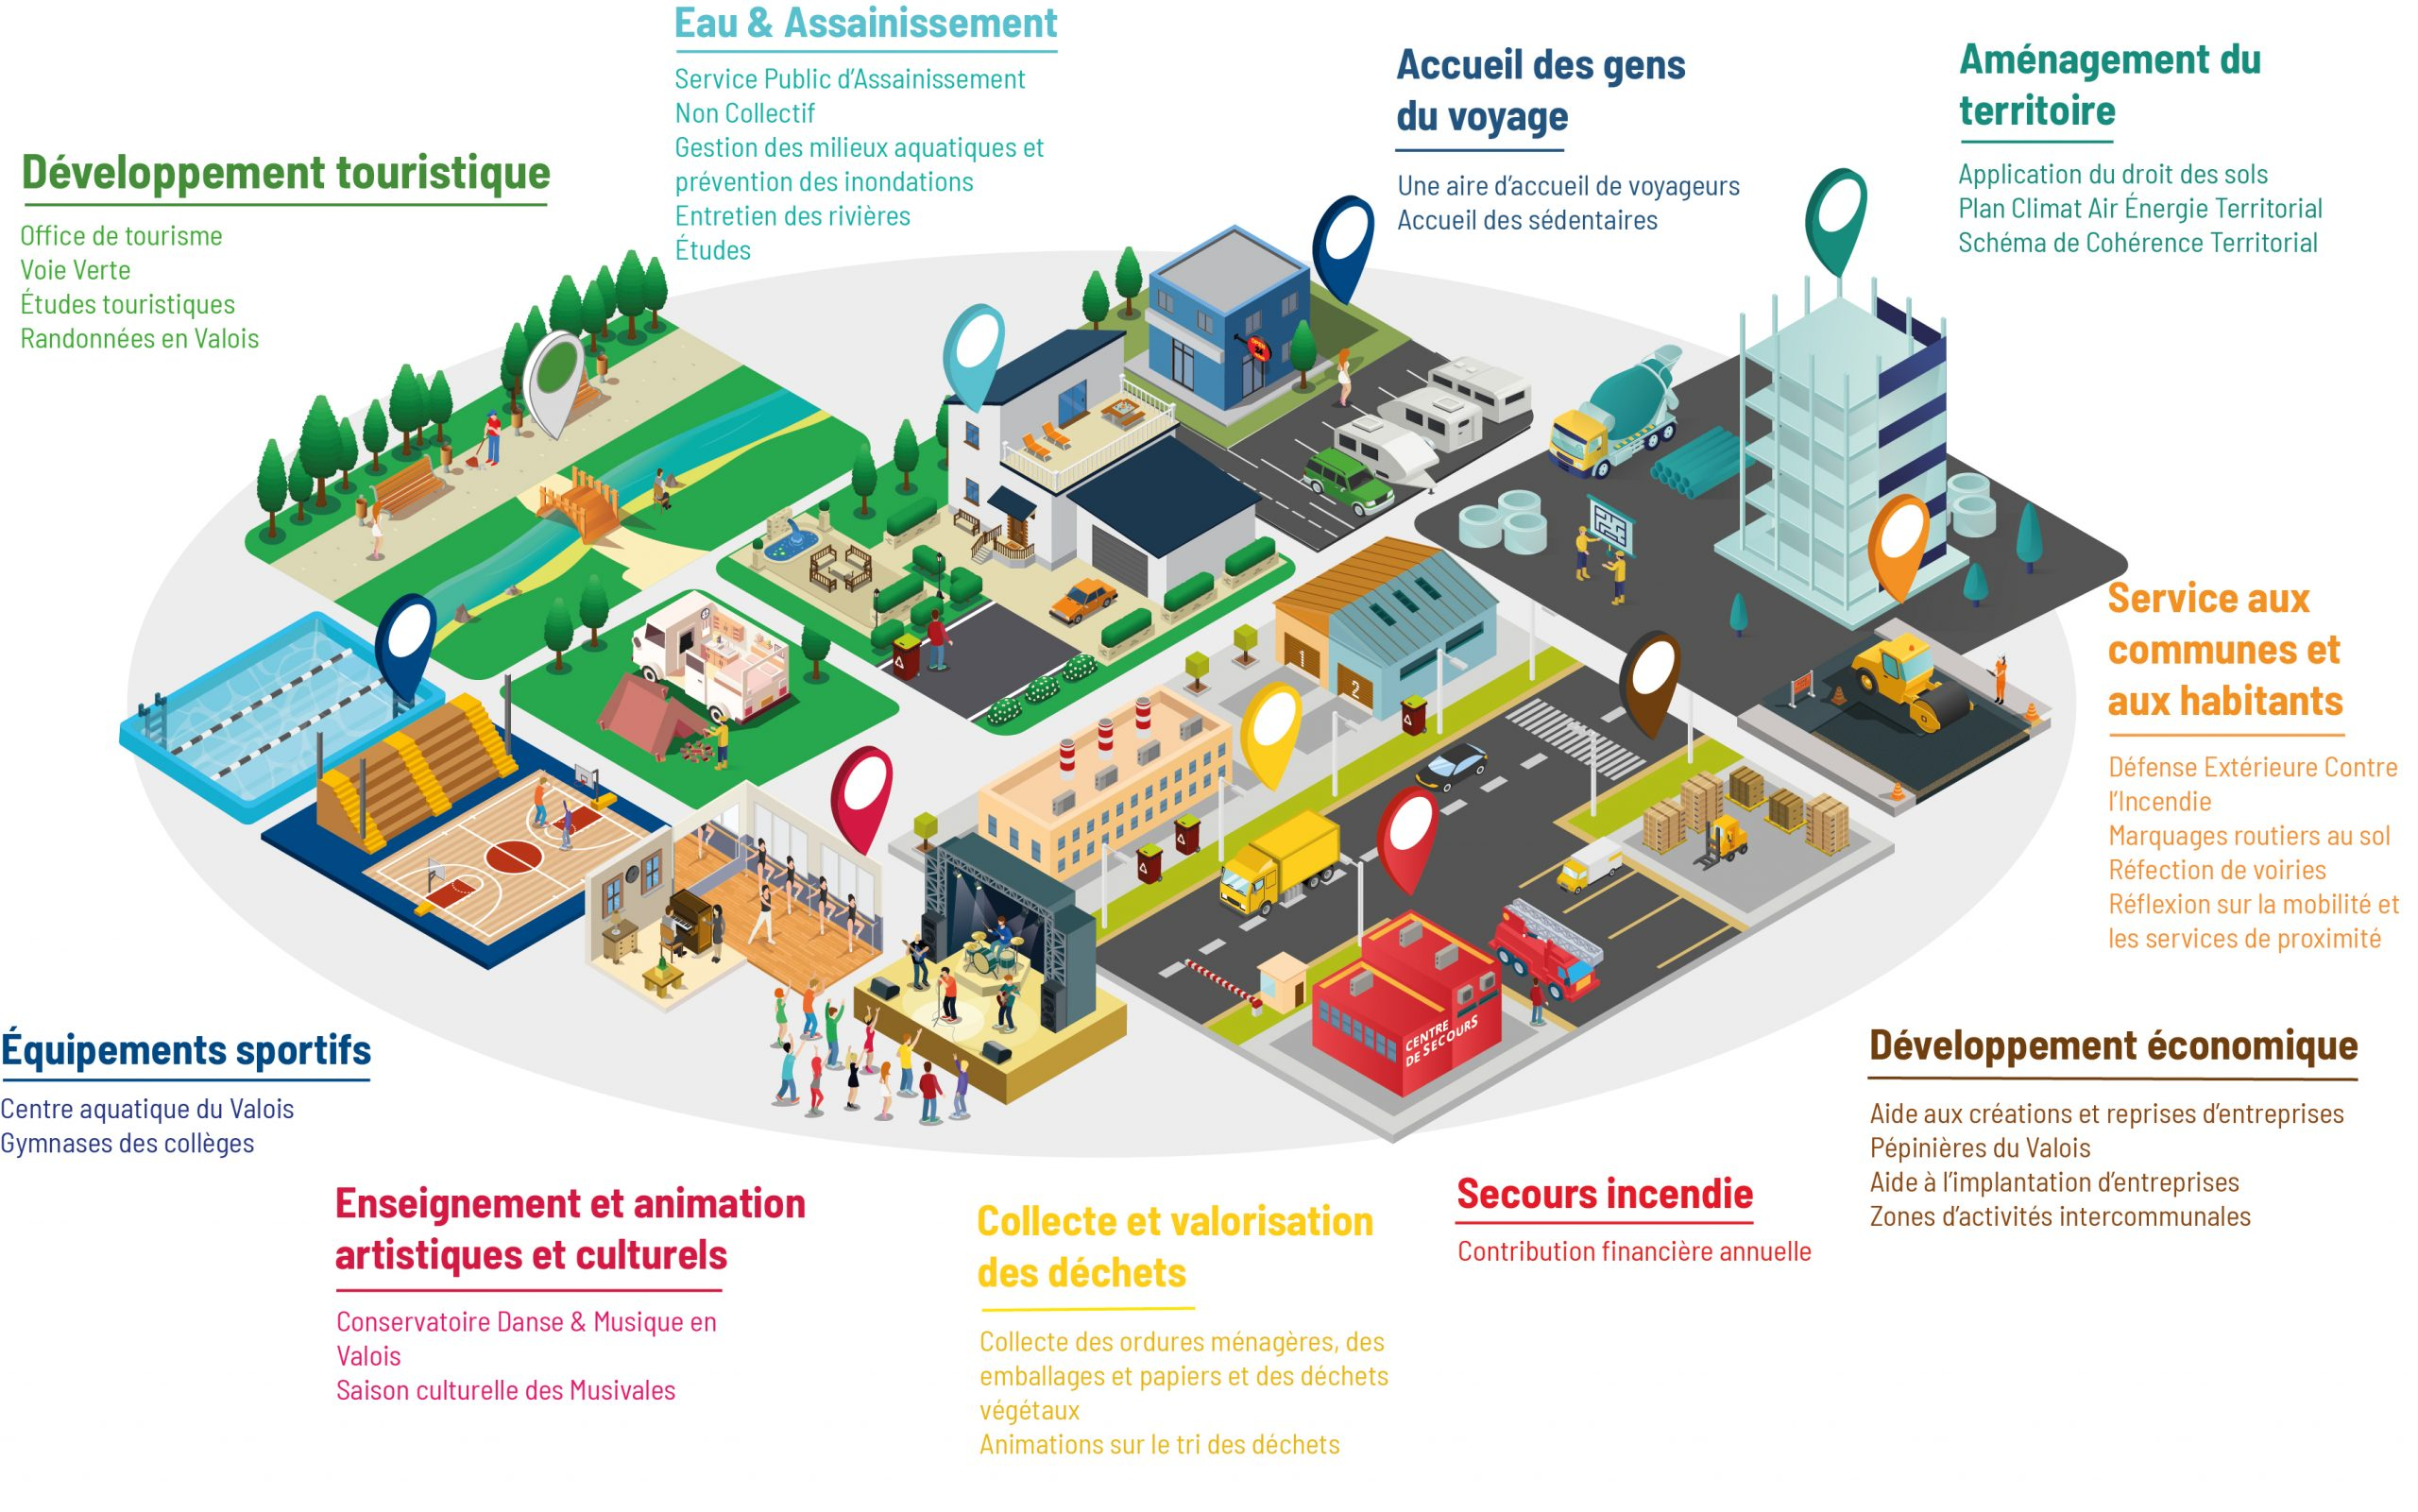 infographie_competences_2020-scaled.jpg